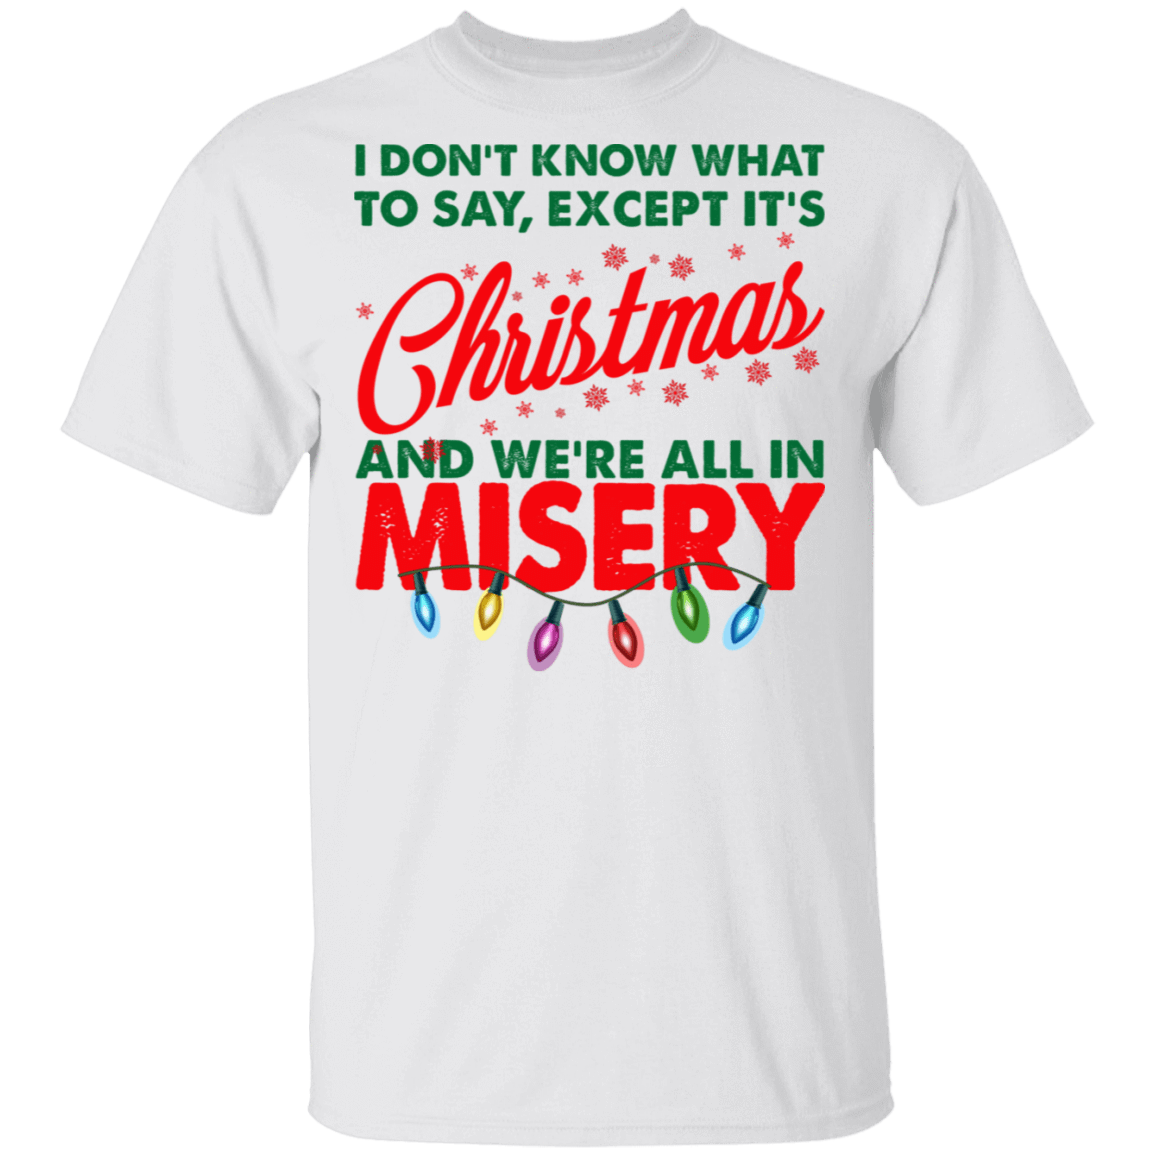 I Don't Know What To Say Except It's Christmas And We're All In Misery T-Shirts, Hoodies, Tank 1049-9974-81138429-48300 - Tee Ript